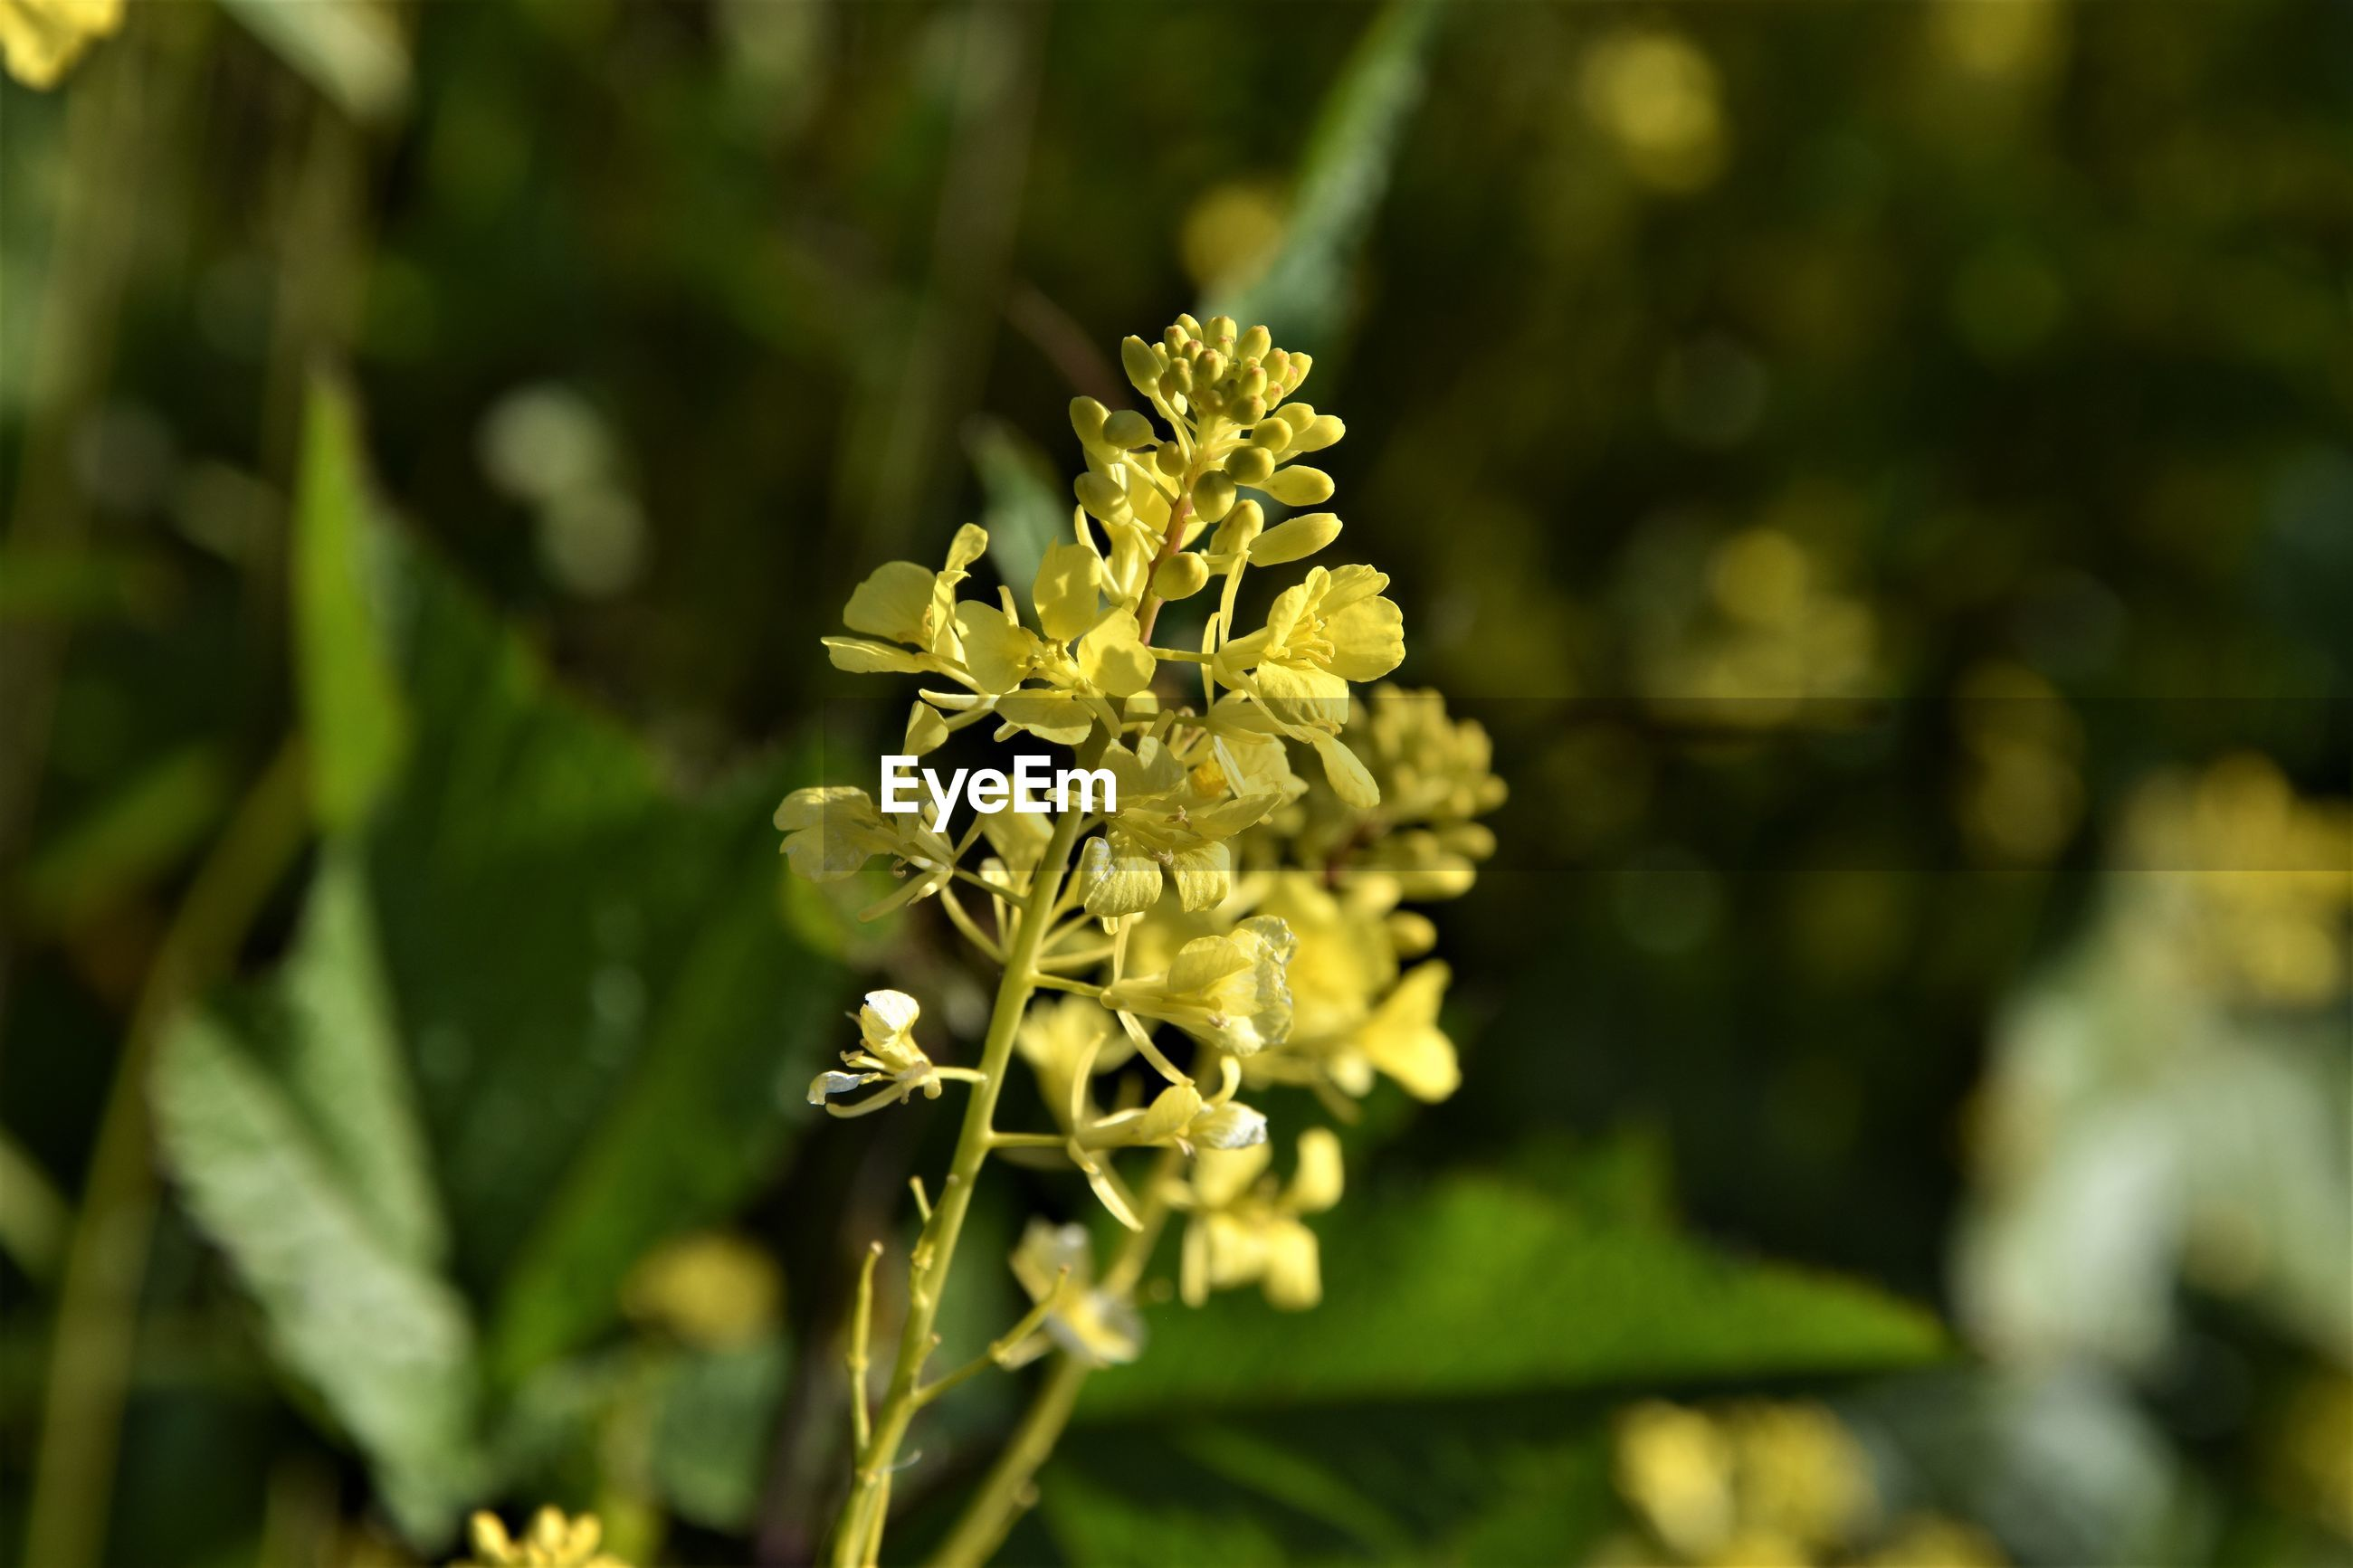 CLOSE-UP OF YELLOW FLOWERING PLANT OUTDOORS